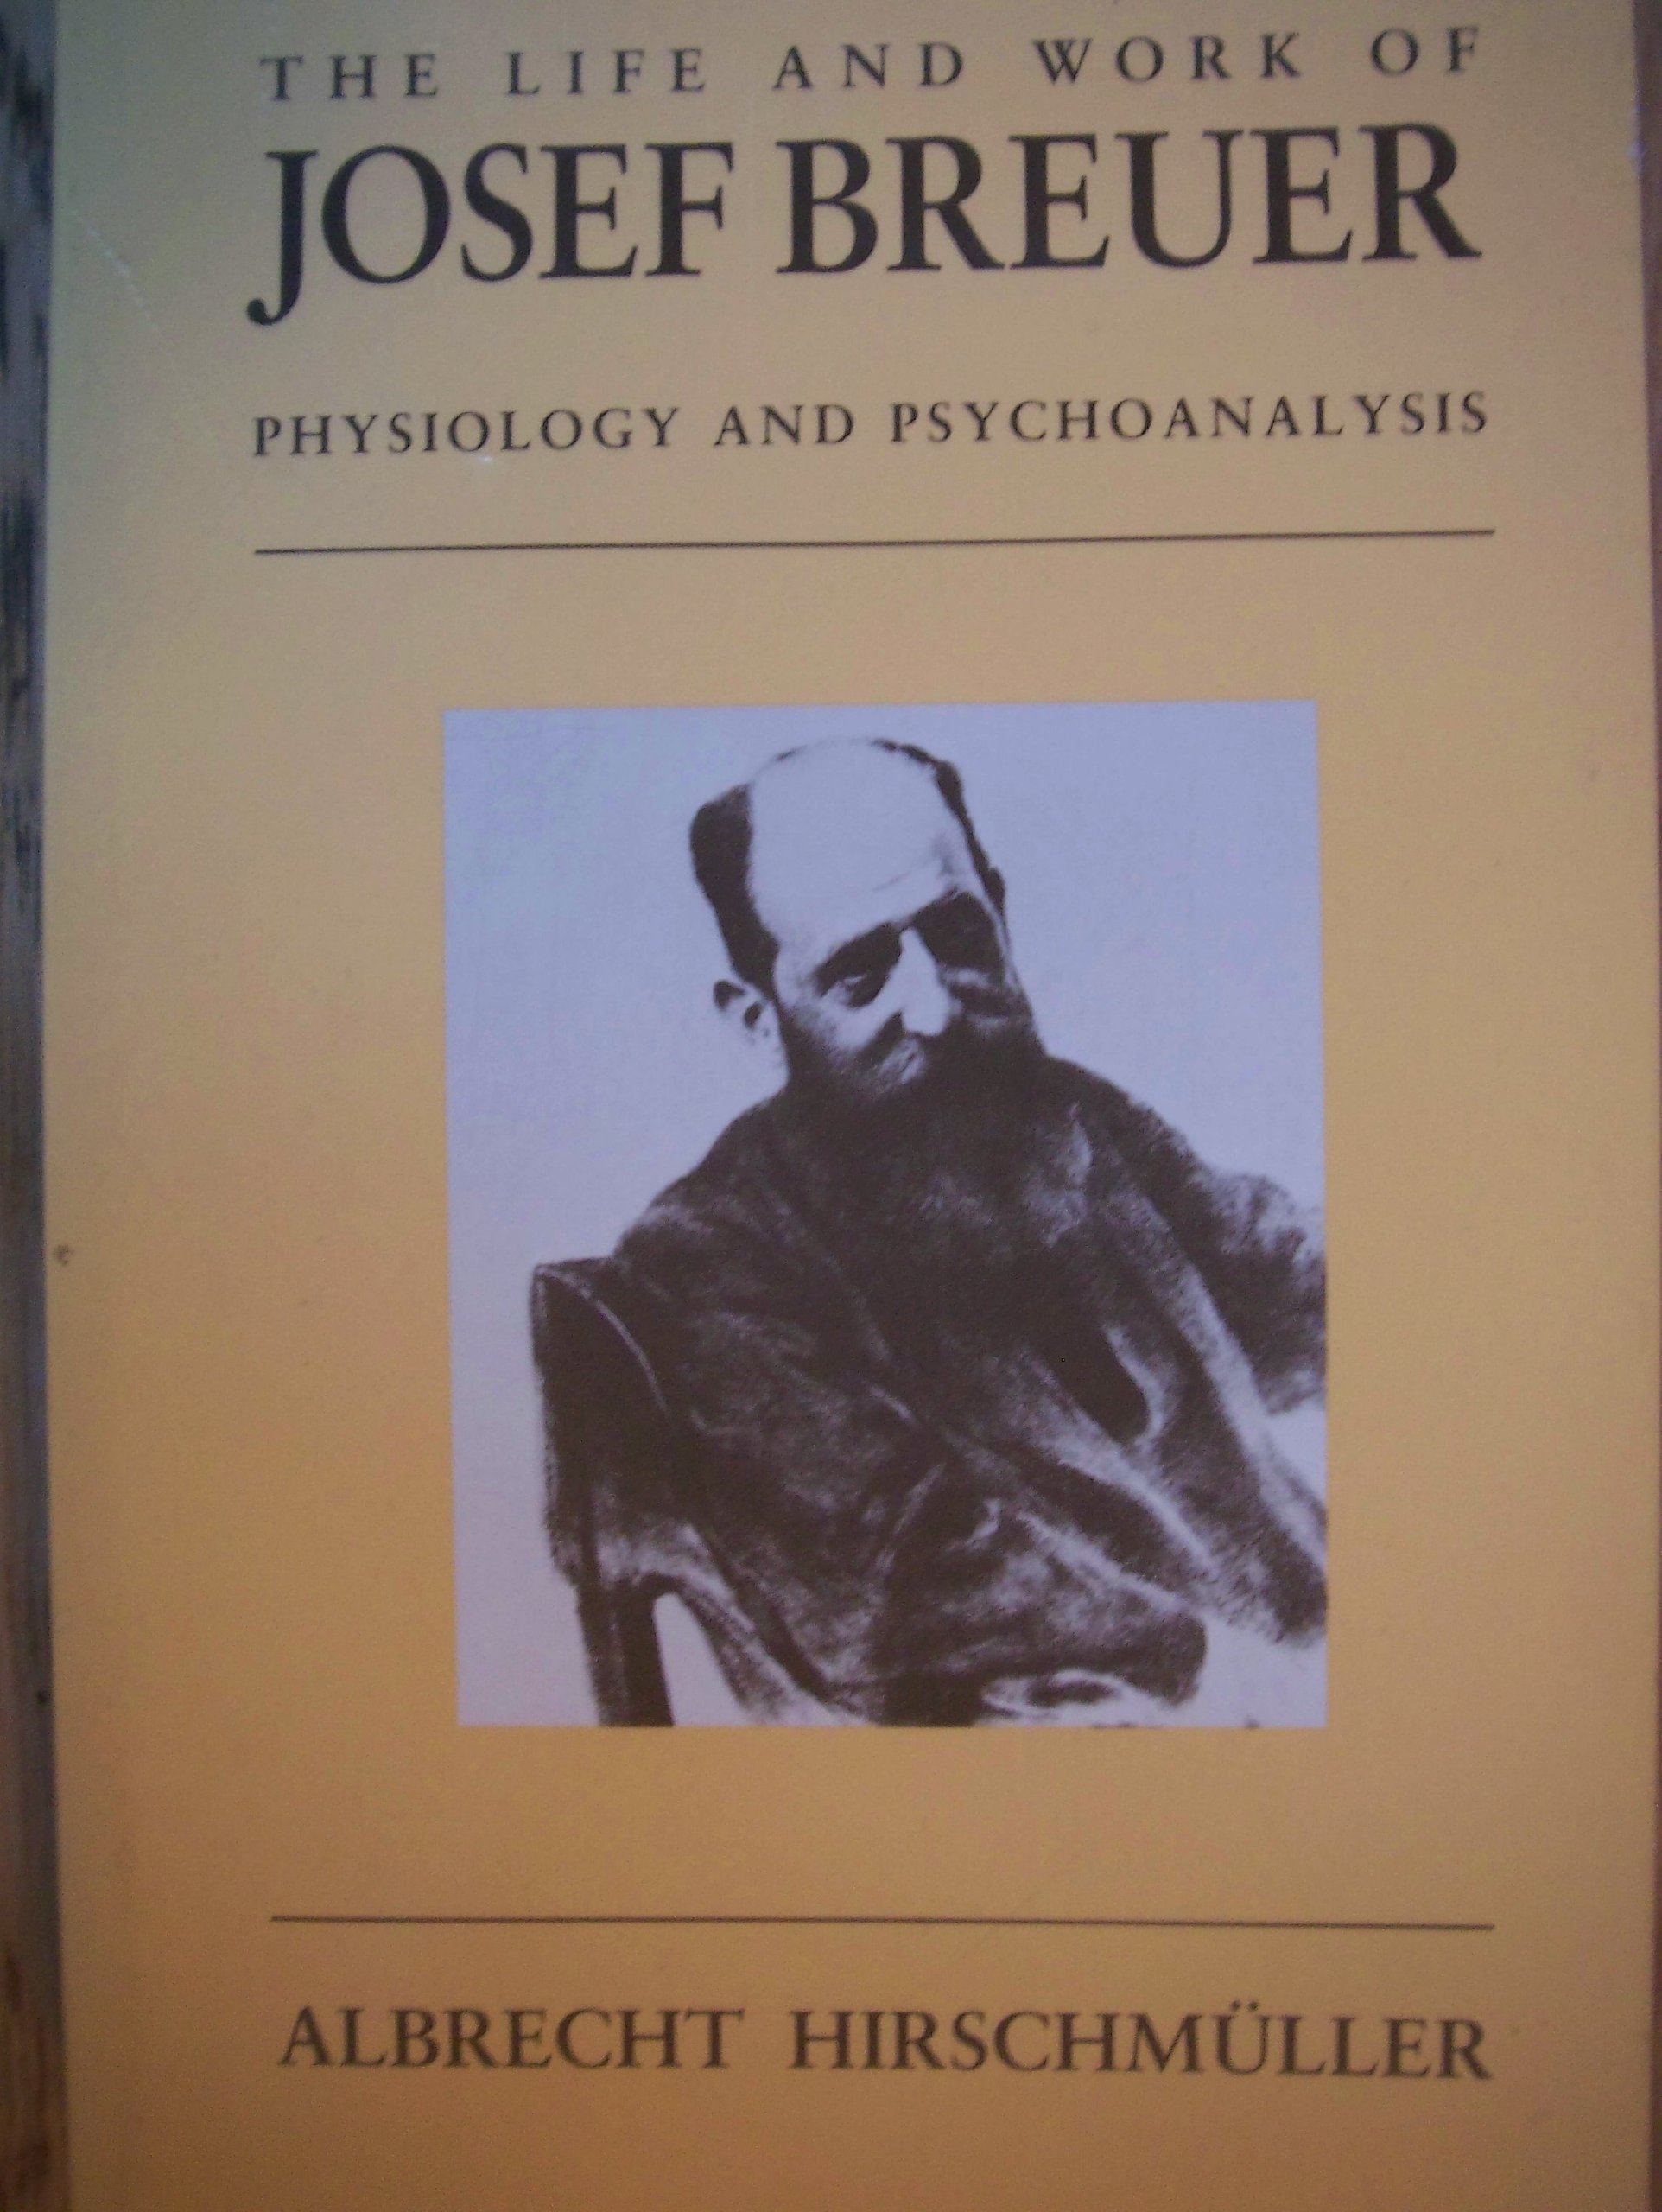 The Life and Work of Josef Breuer: Physiology and Psychoanalysis